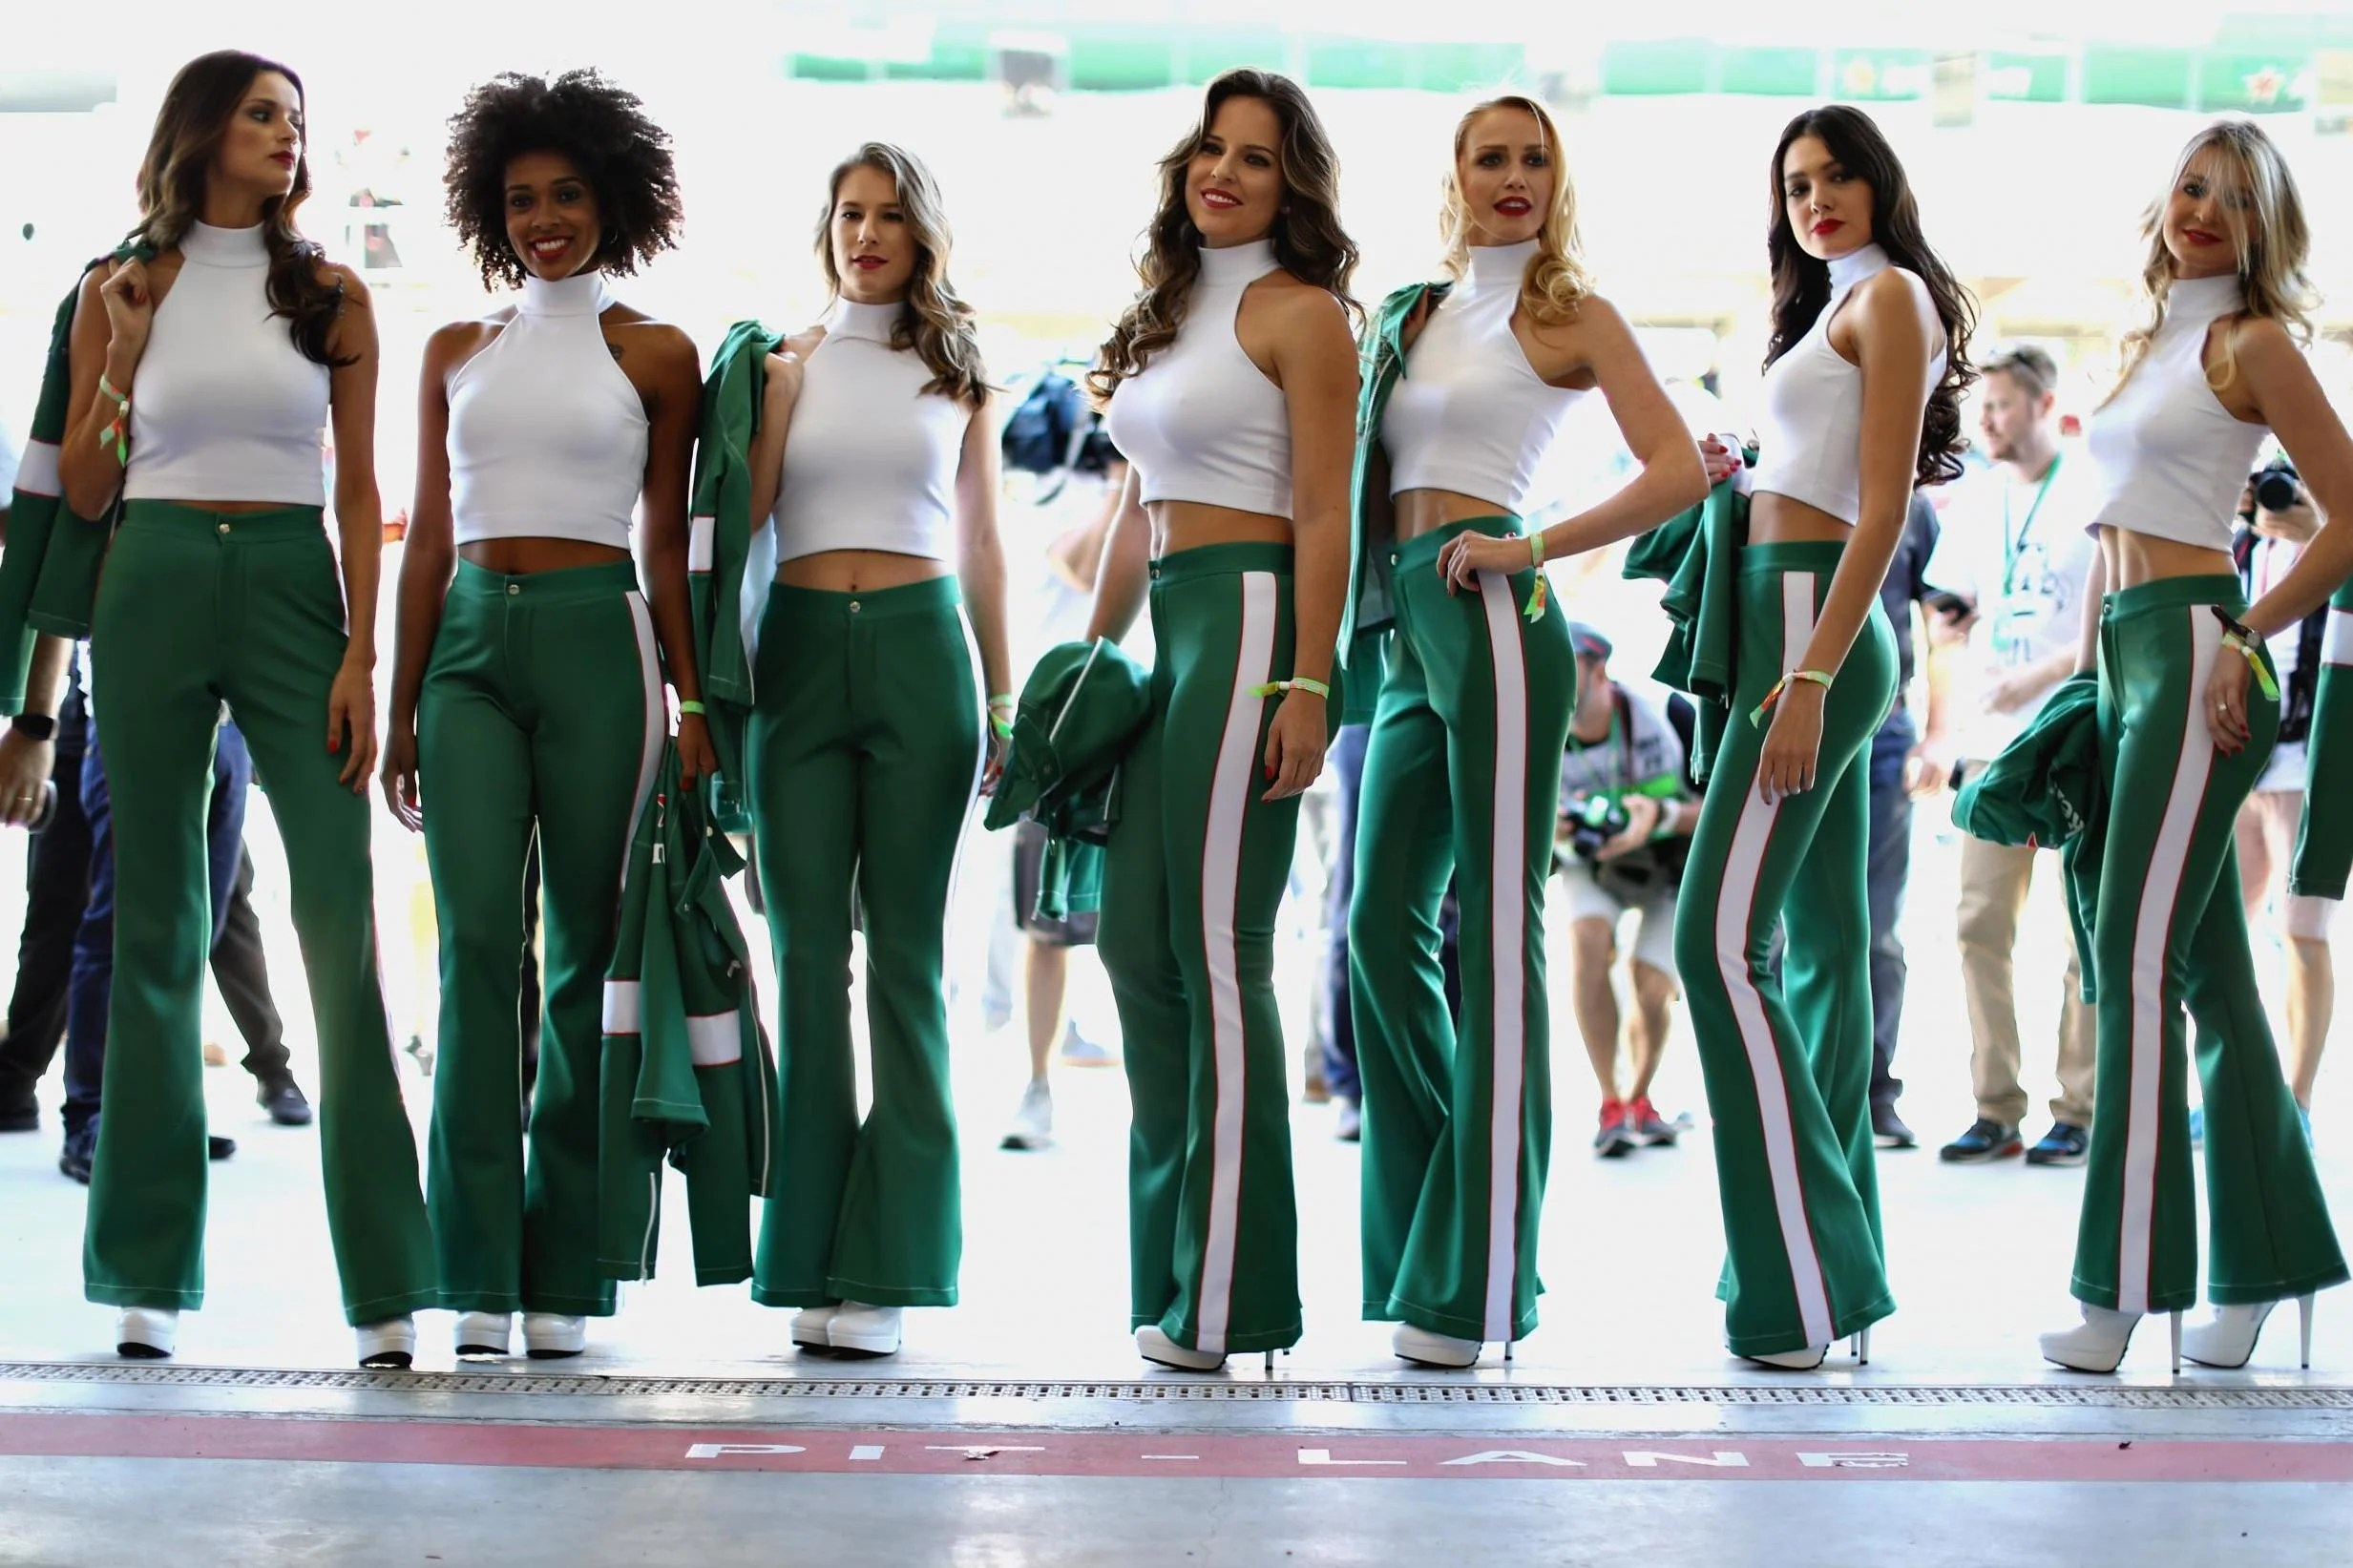 f1 grid girls dropped